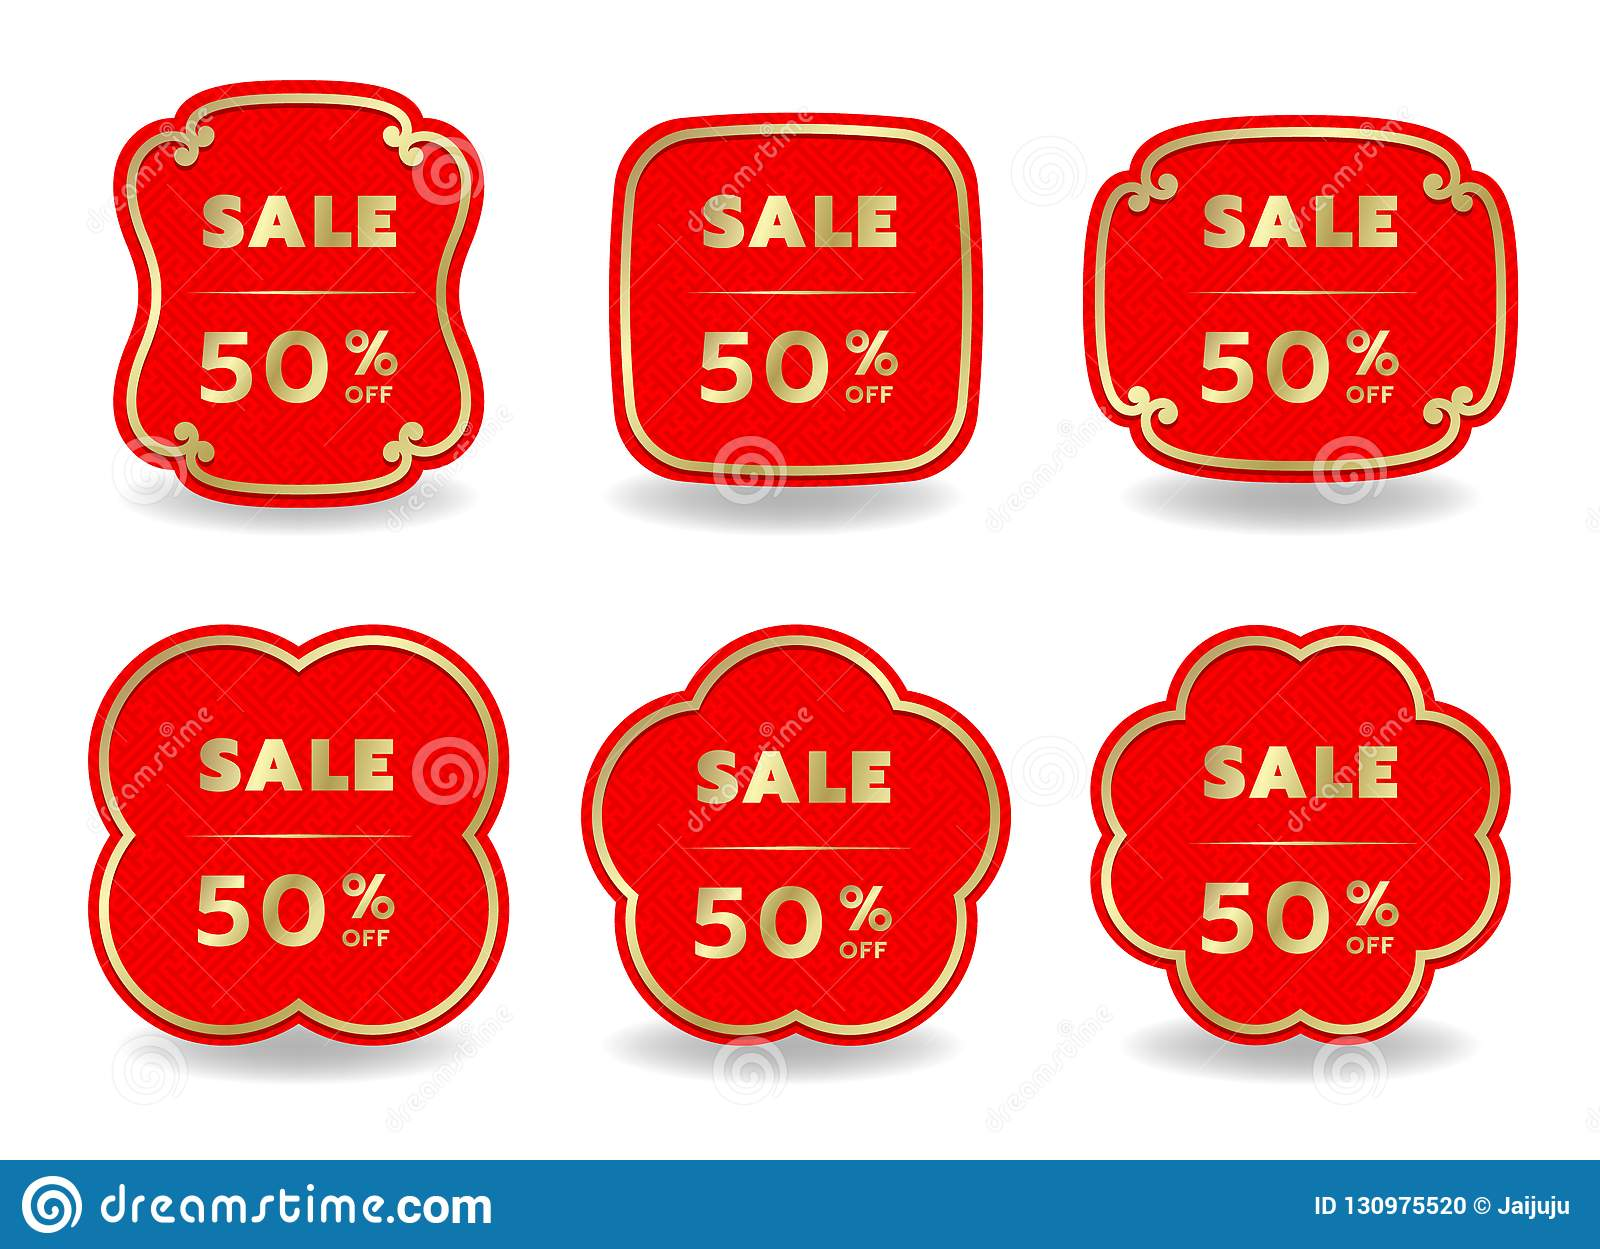 set of chinese new year sale banner with border gold on red background vector design